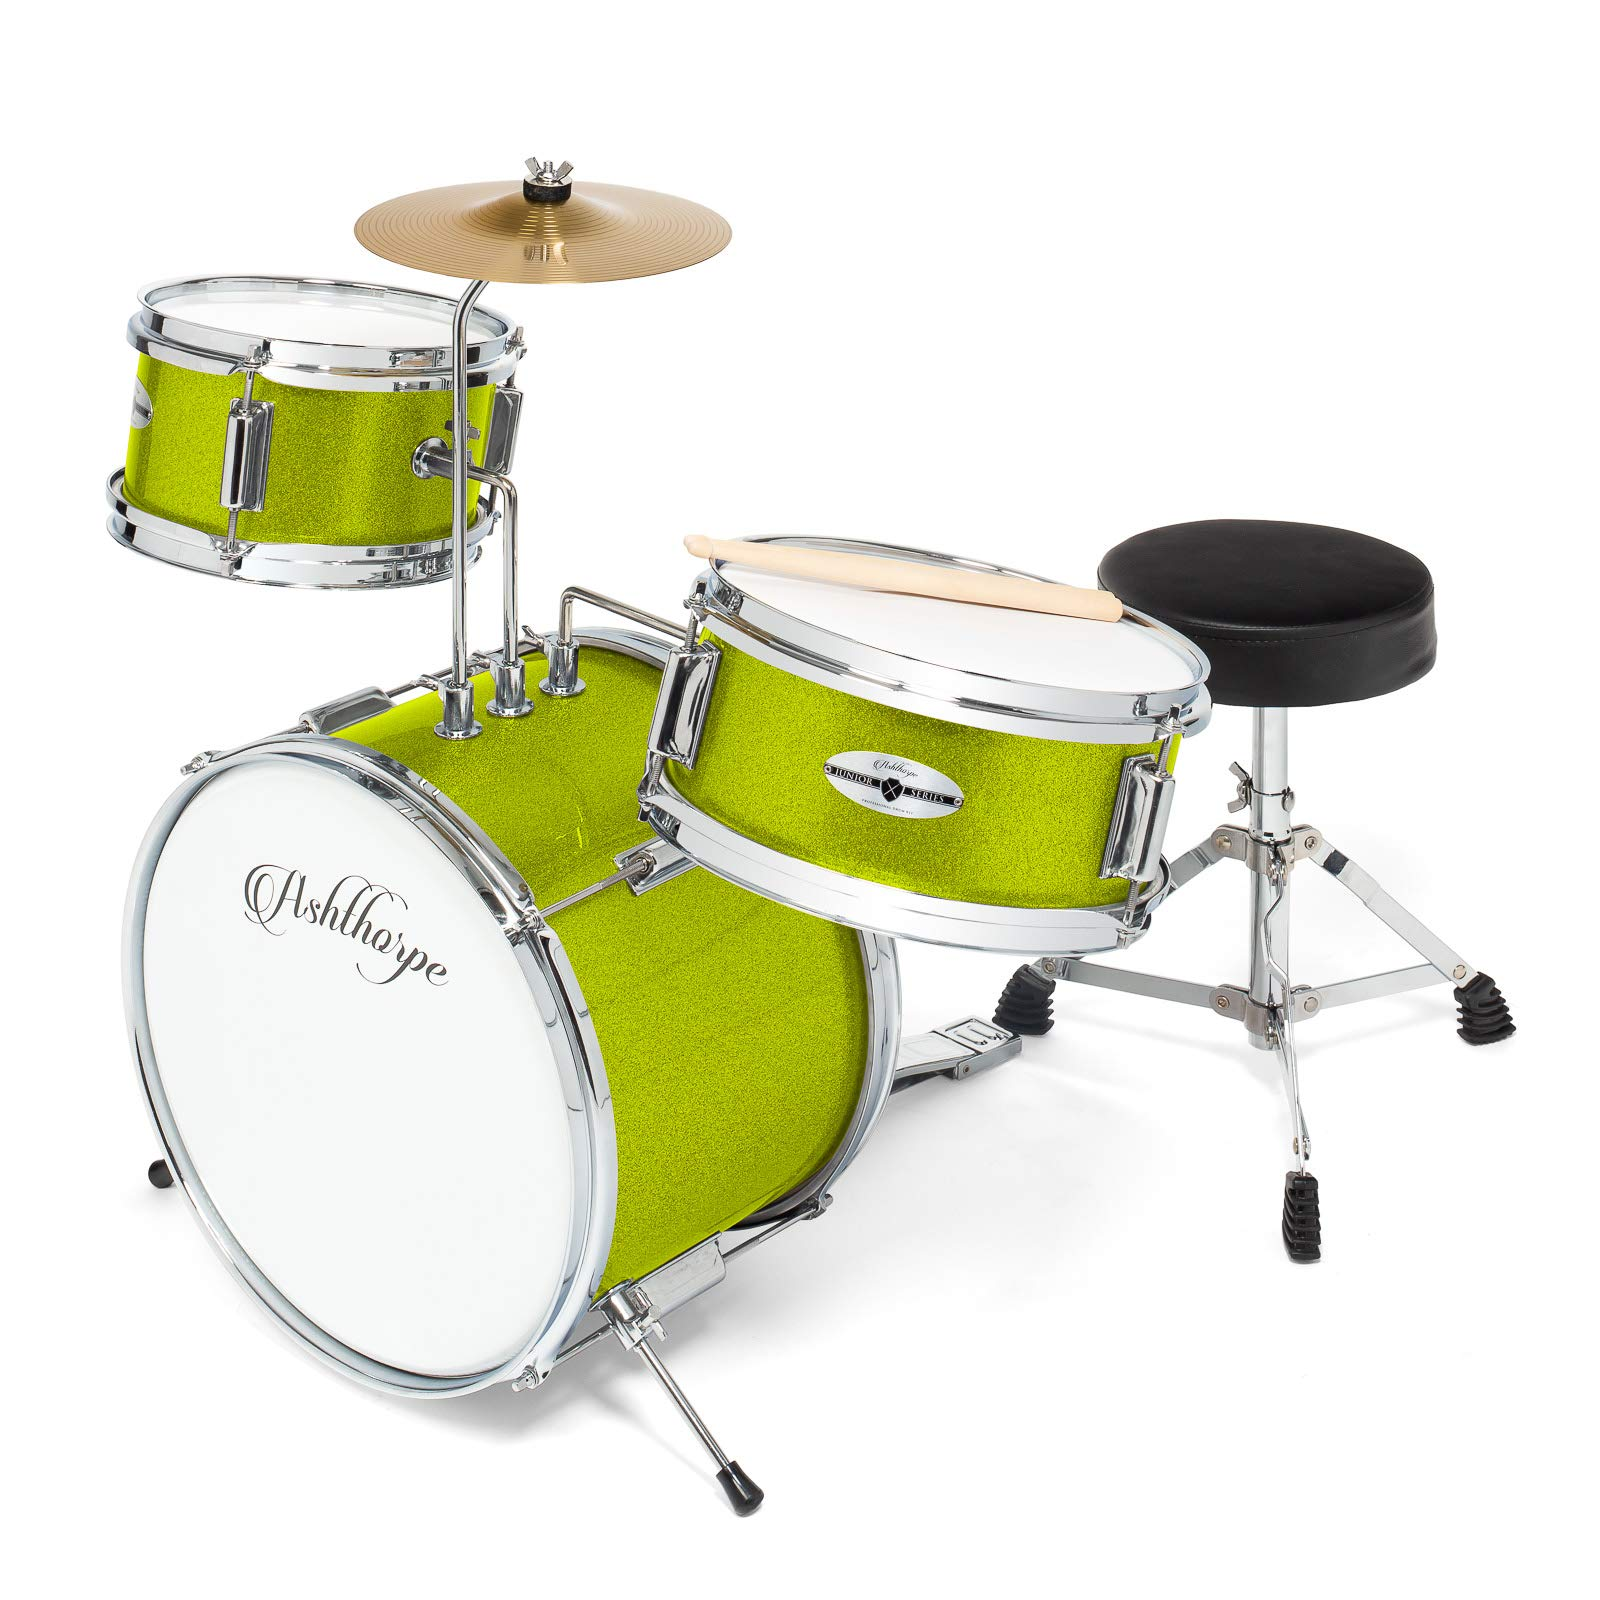 Ashthorpe 3-Piece Complete Kid's Junior Drum Set - Children's Beginner Kit with 14'' Bass, Adjustable Throne, Cymbal, Pedal & Drumsticks - Green by Ashthorpe